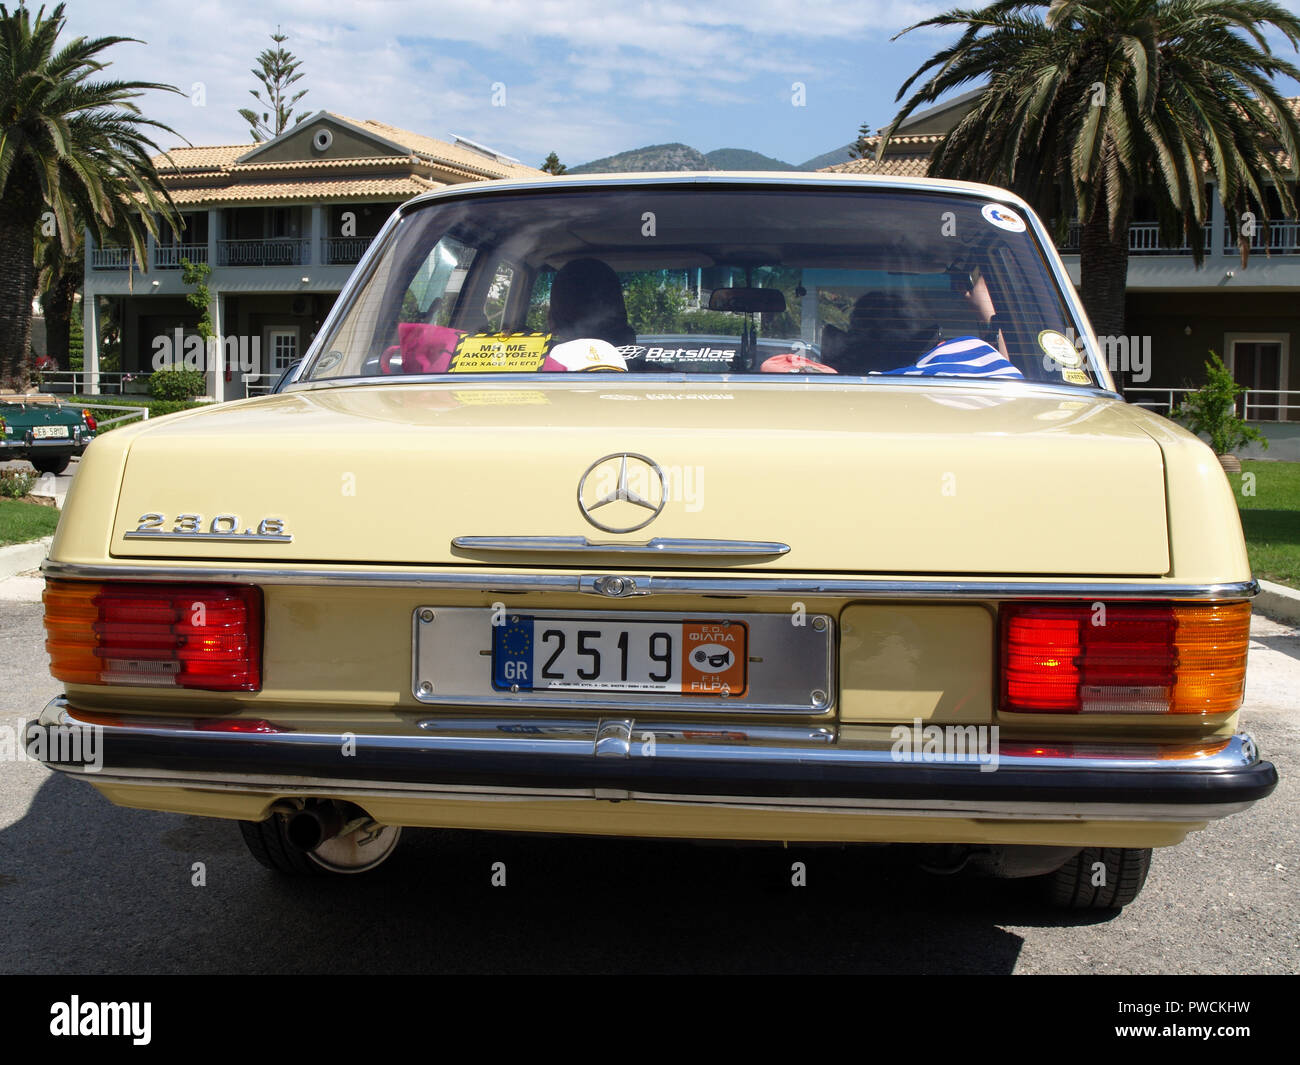 Vintage Mercedes 230 on display at the 8th Hellenic Bulgarian LEKAM classic car rally at the Acharavi Park Hotel, Acharavi, Corfu, Greece - Stock Image